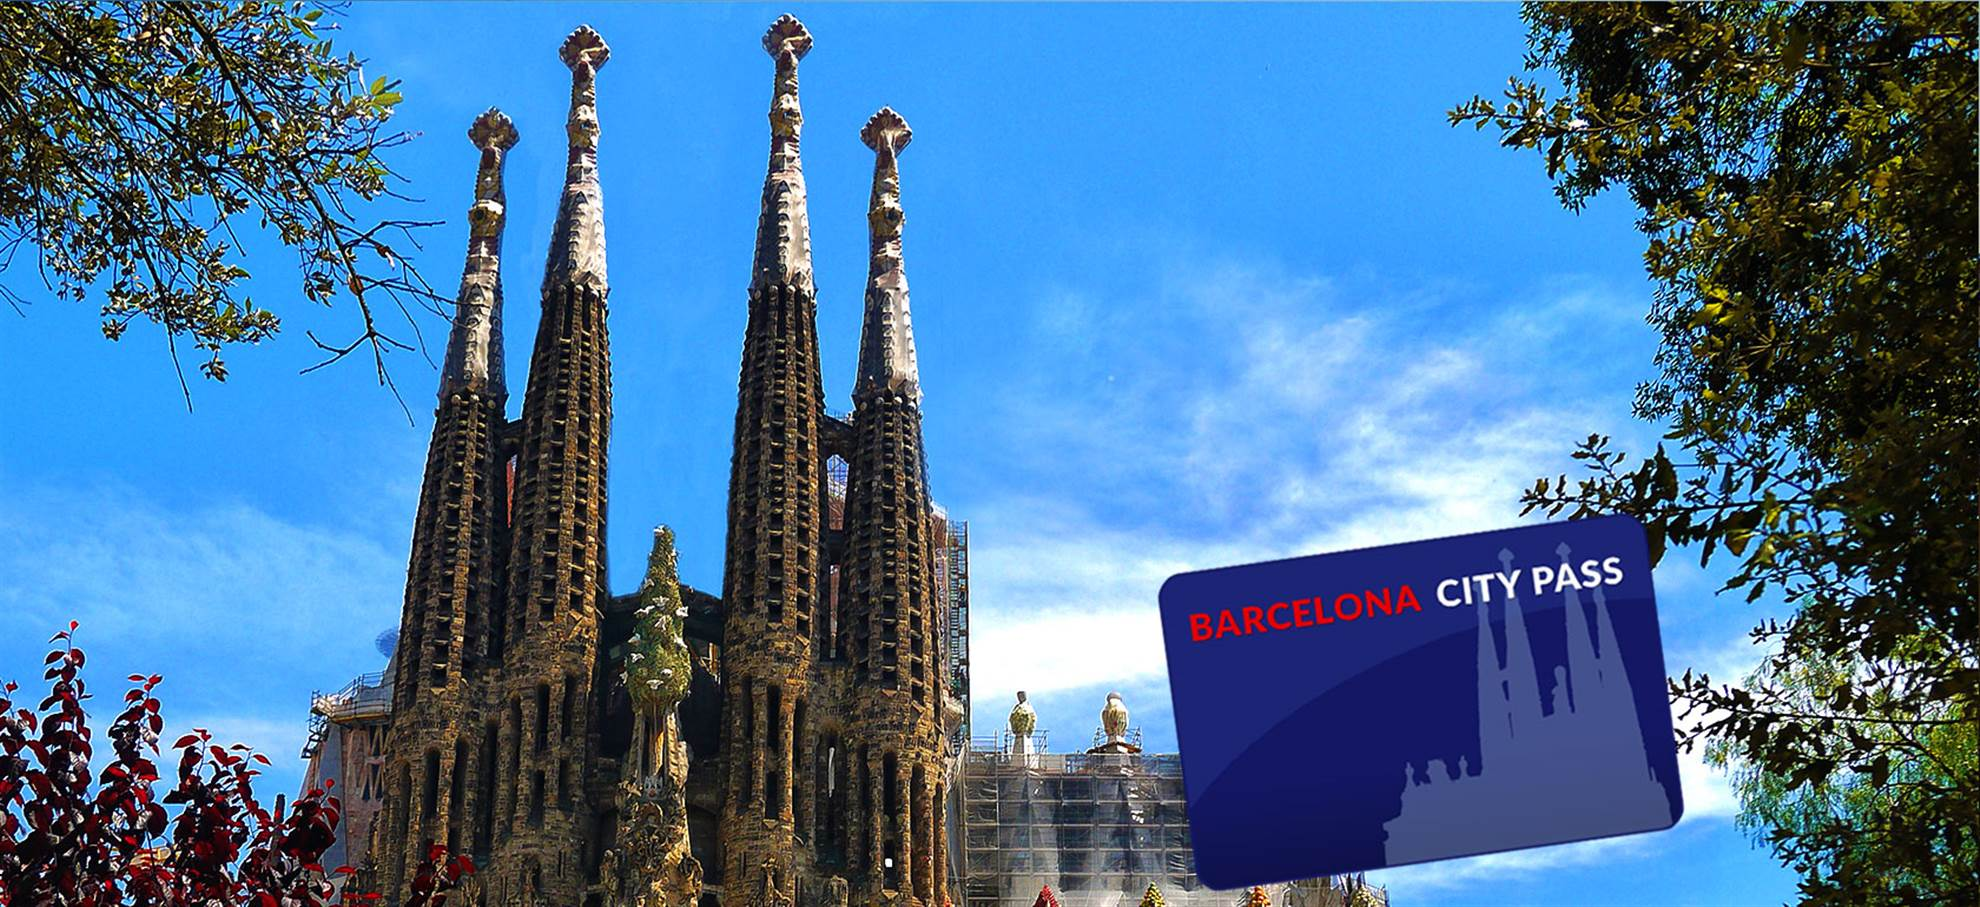 Barcelona City Pass (Incl. Sagrada Familia, Park Güell) + Audioguide